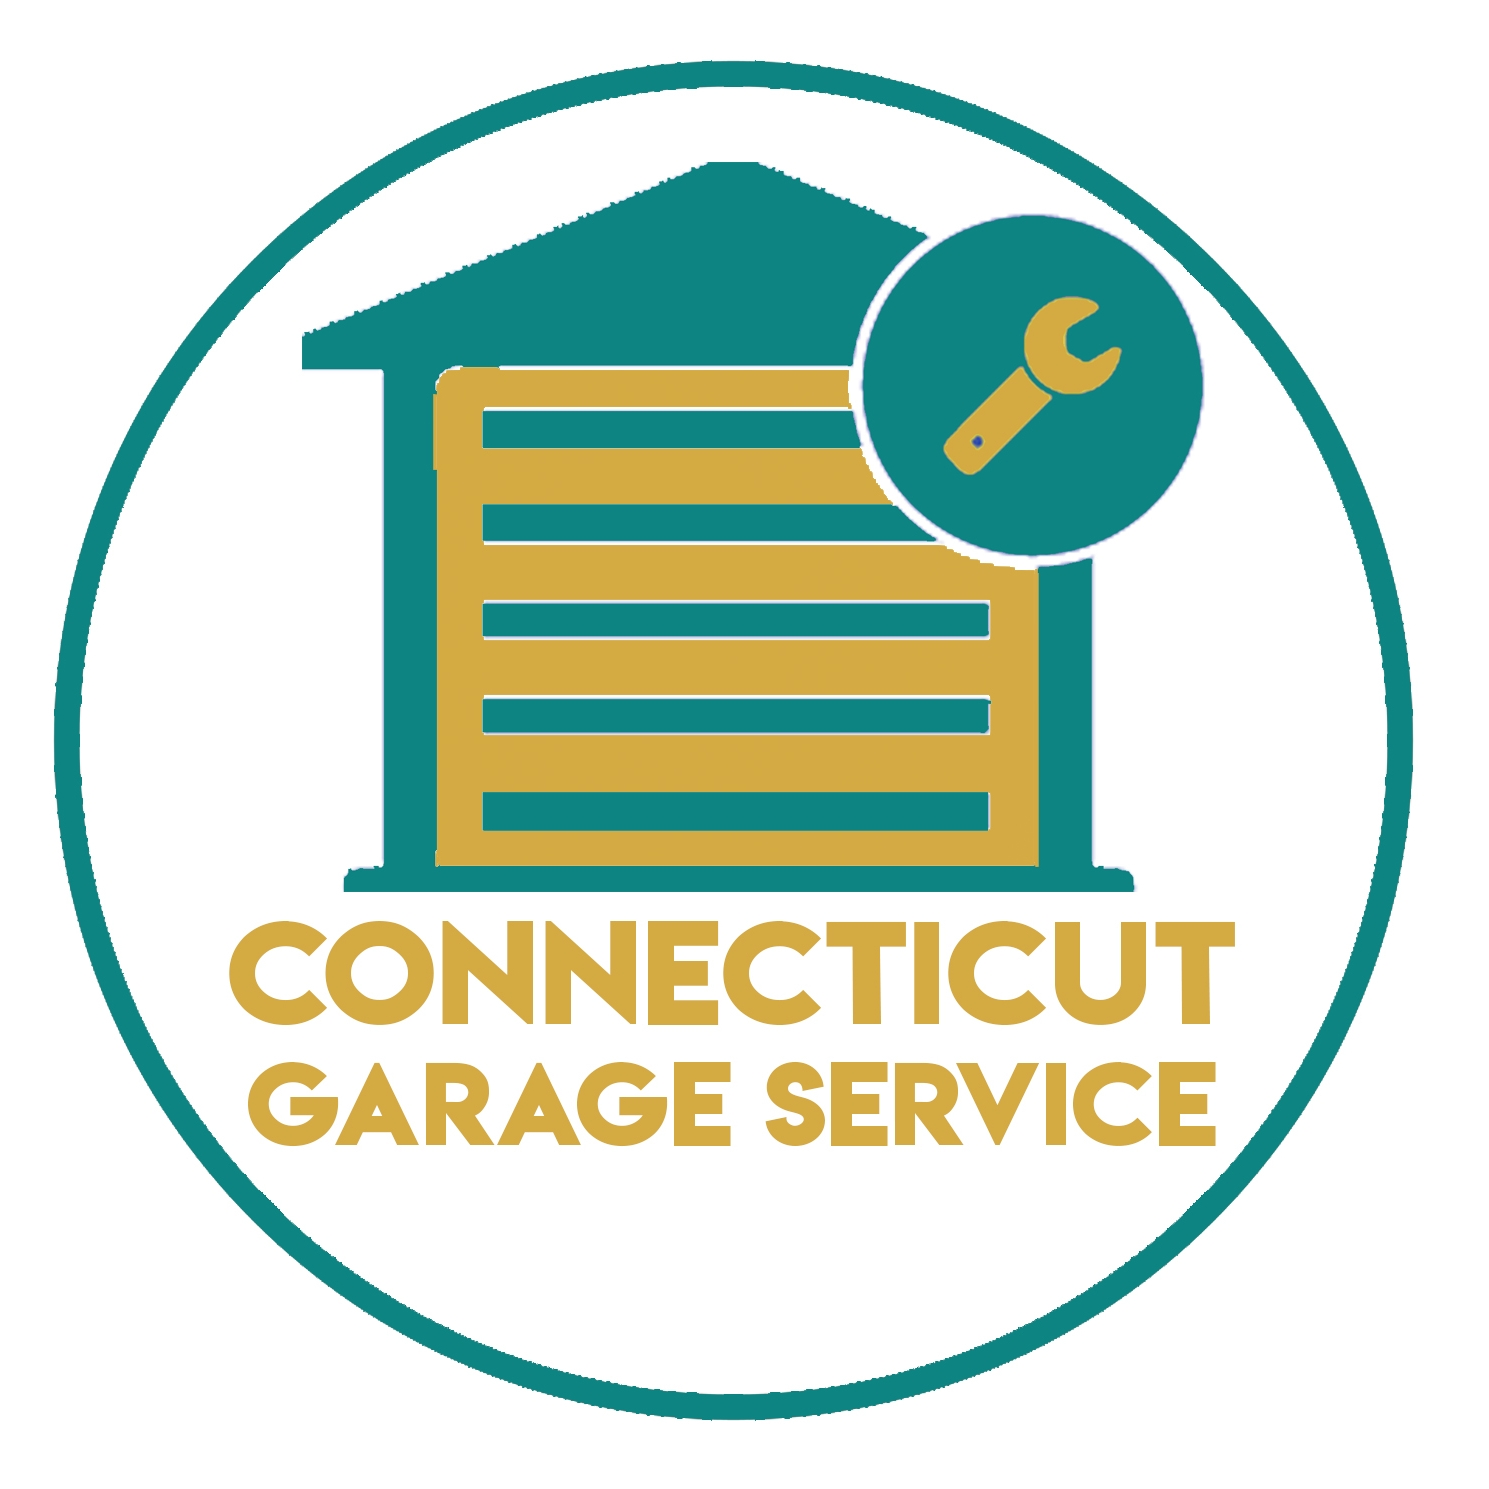 Connecticut Garage Service LLC